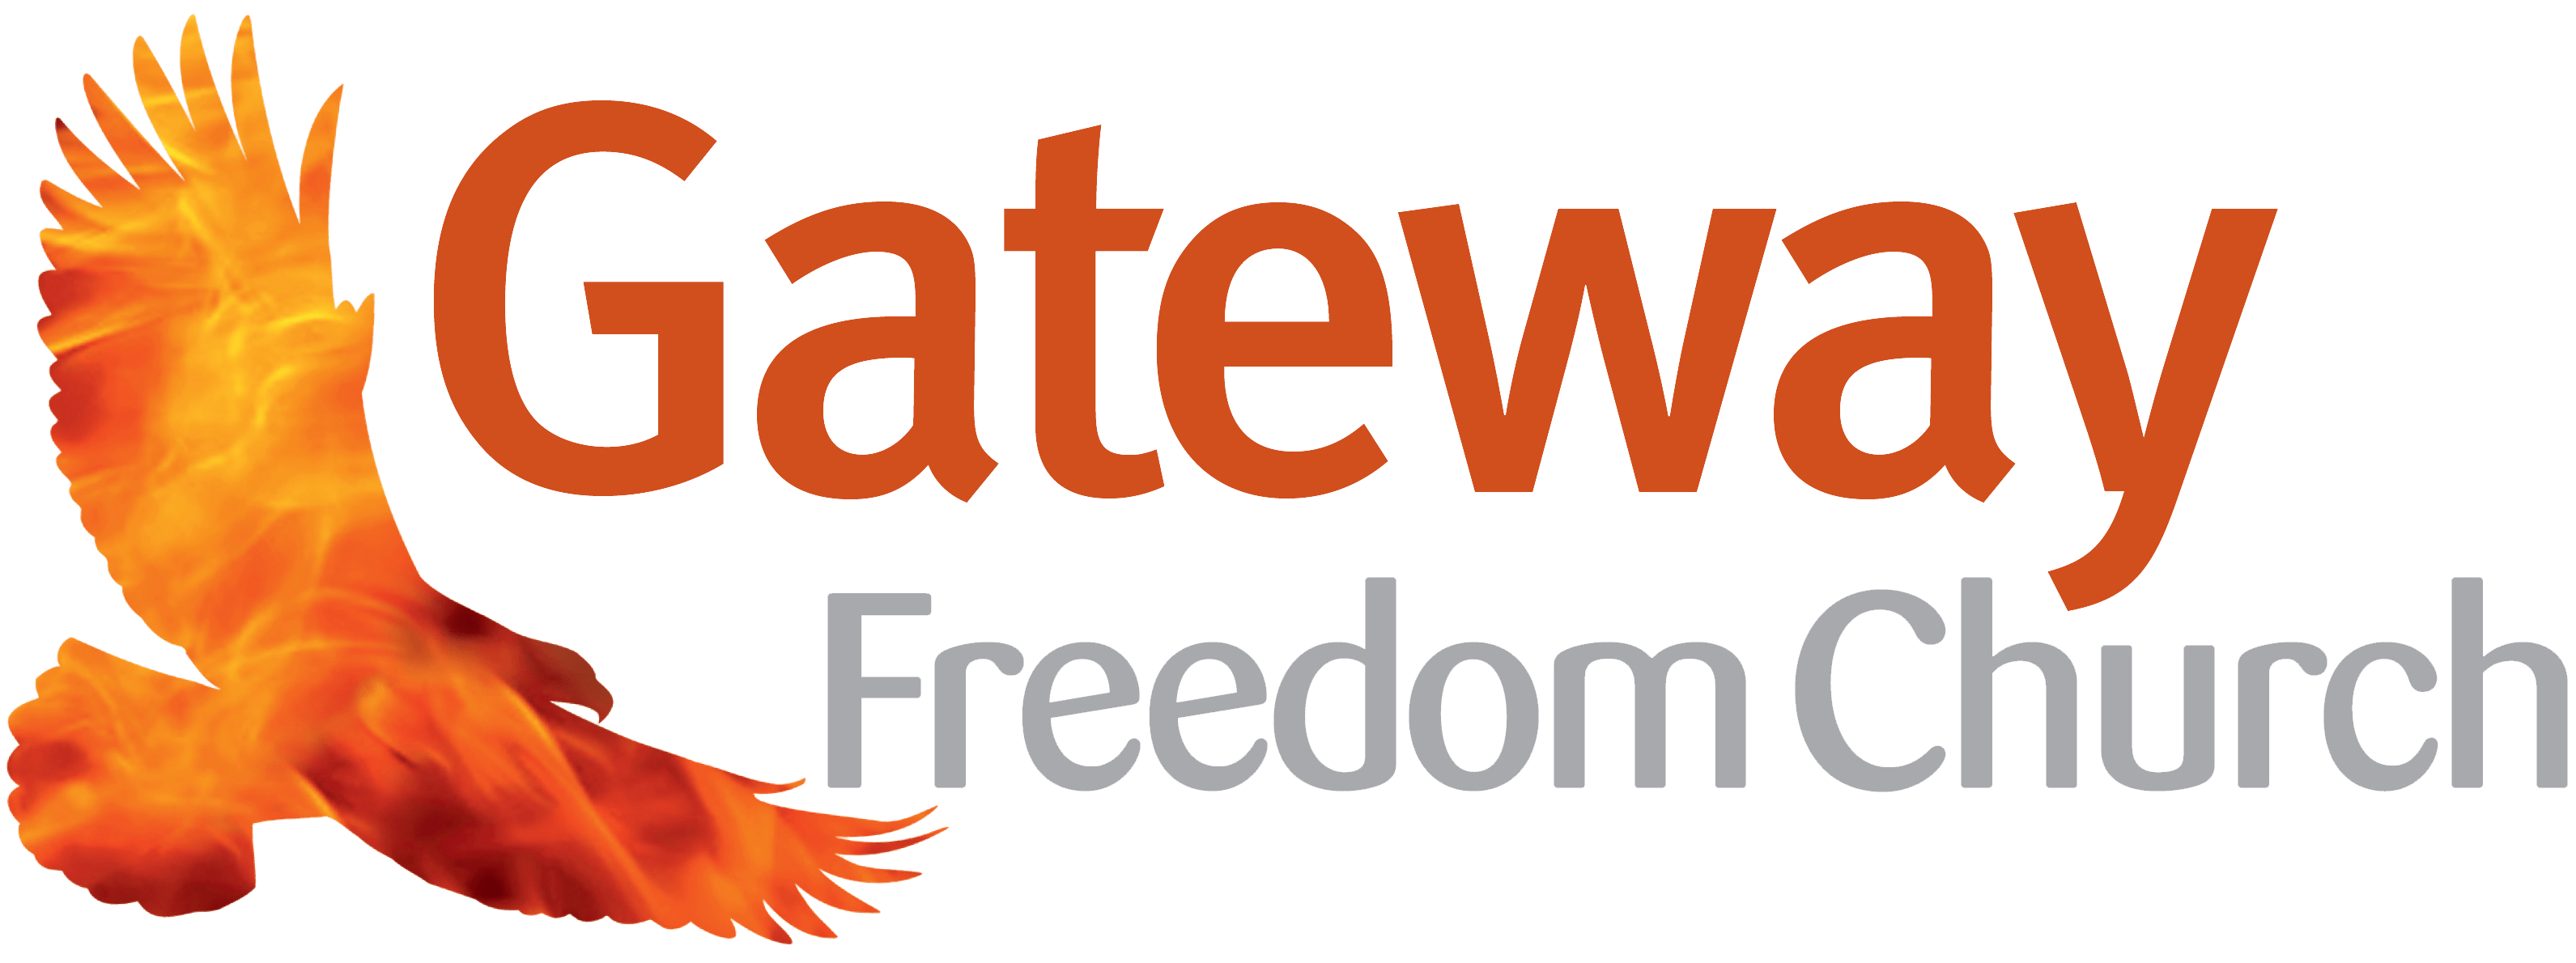 Gateway Freedom Church